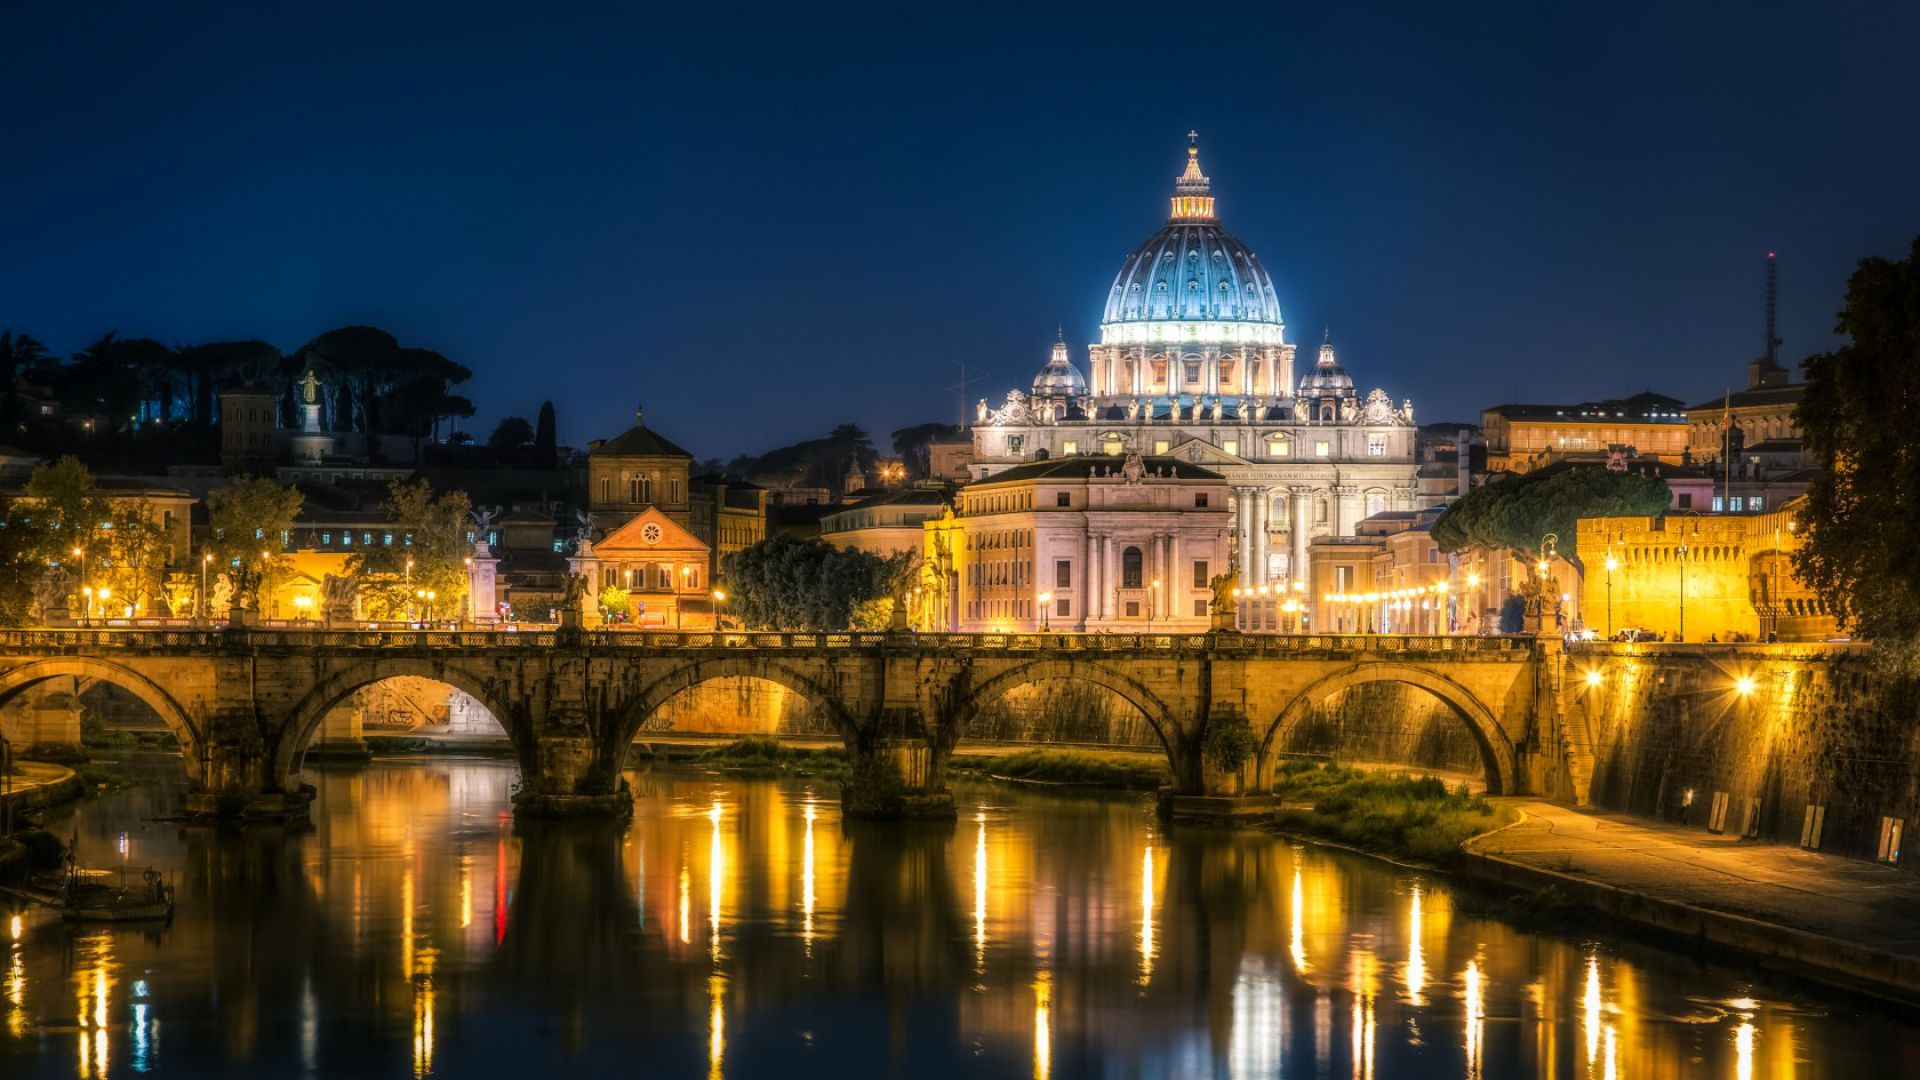 st. angelo bridge, Rome, Italy, Tourism, Travel (horizontal)